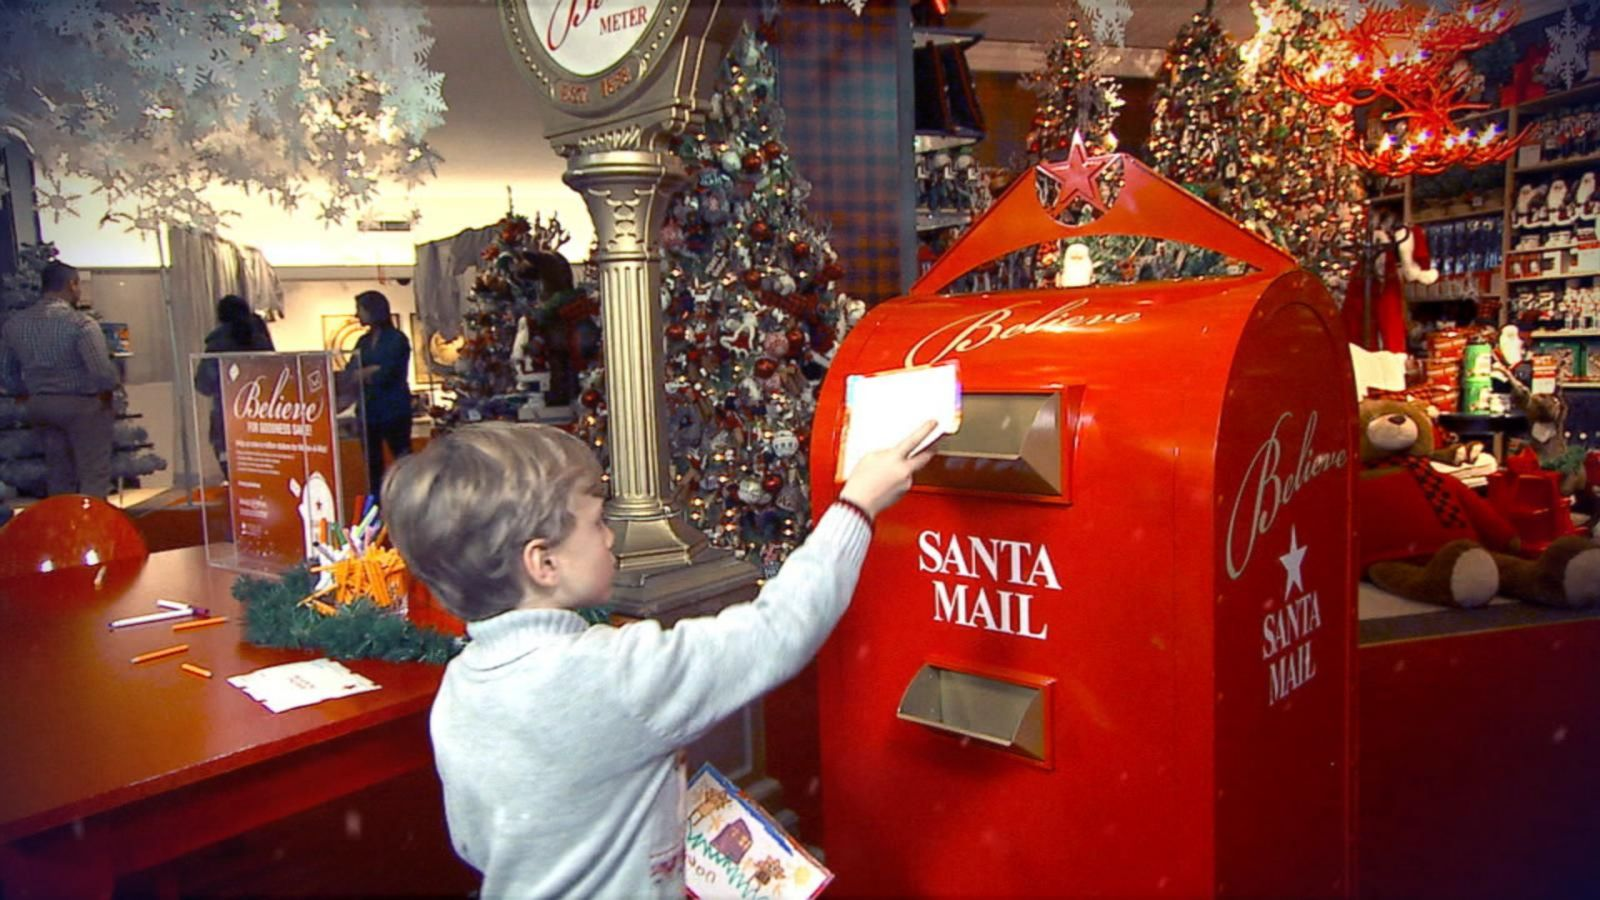 VIDEO: Macy's Santa Project Spreads Belief This Holiday Season